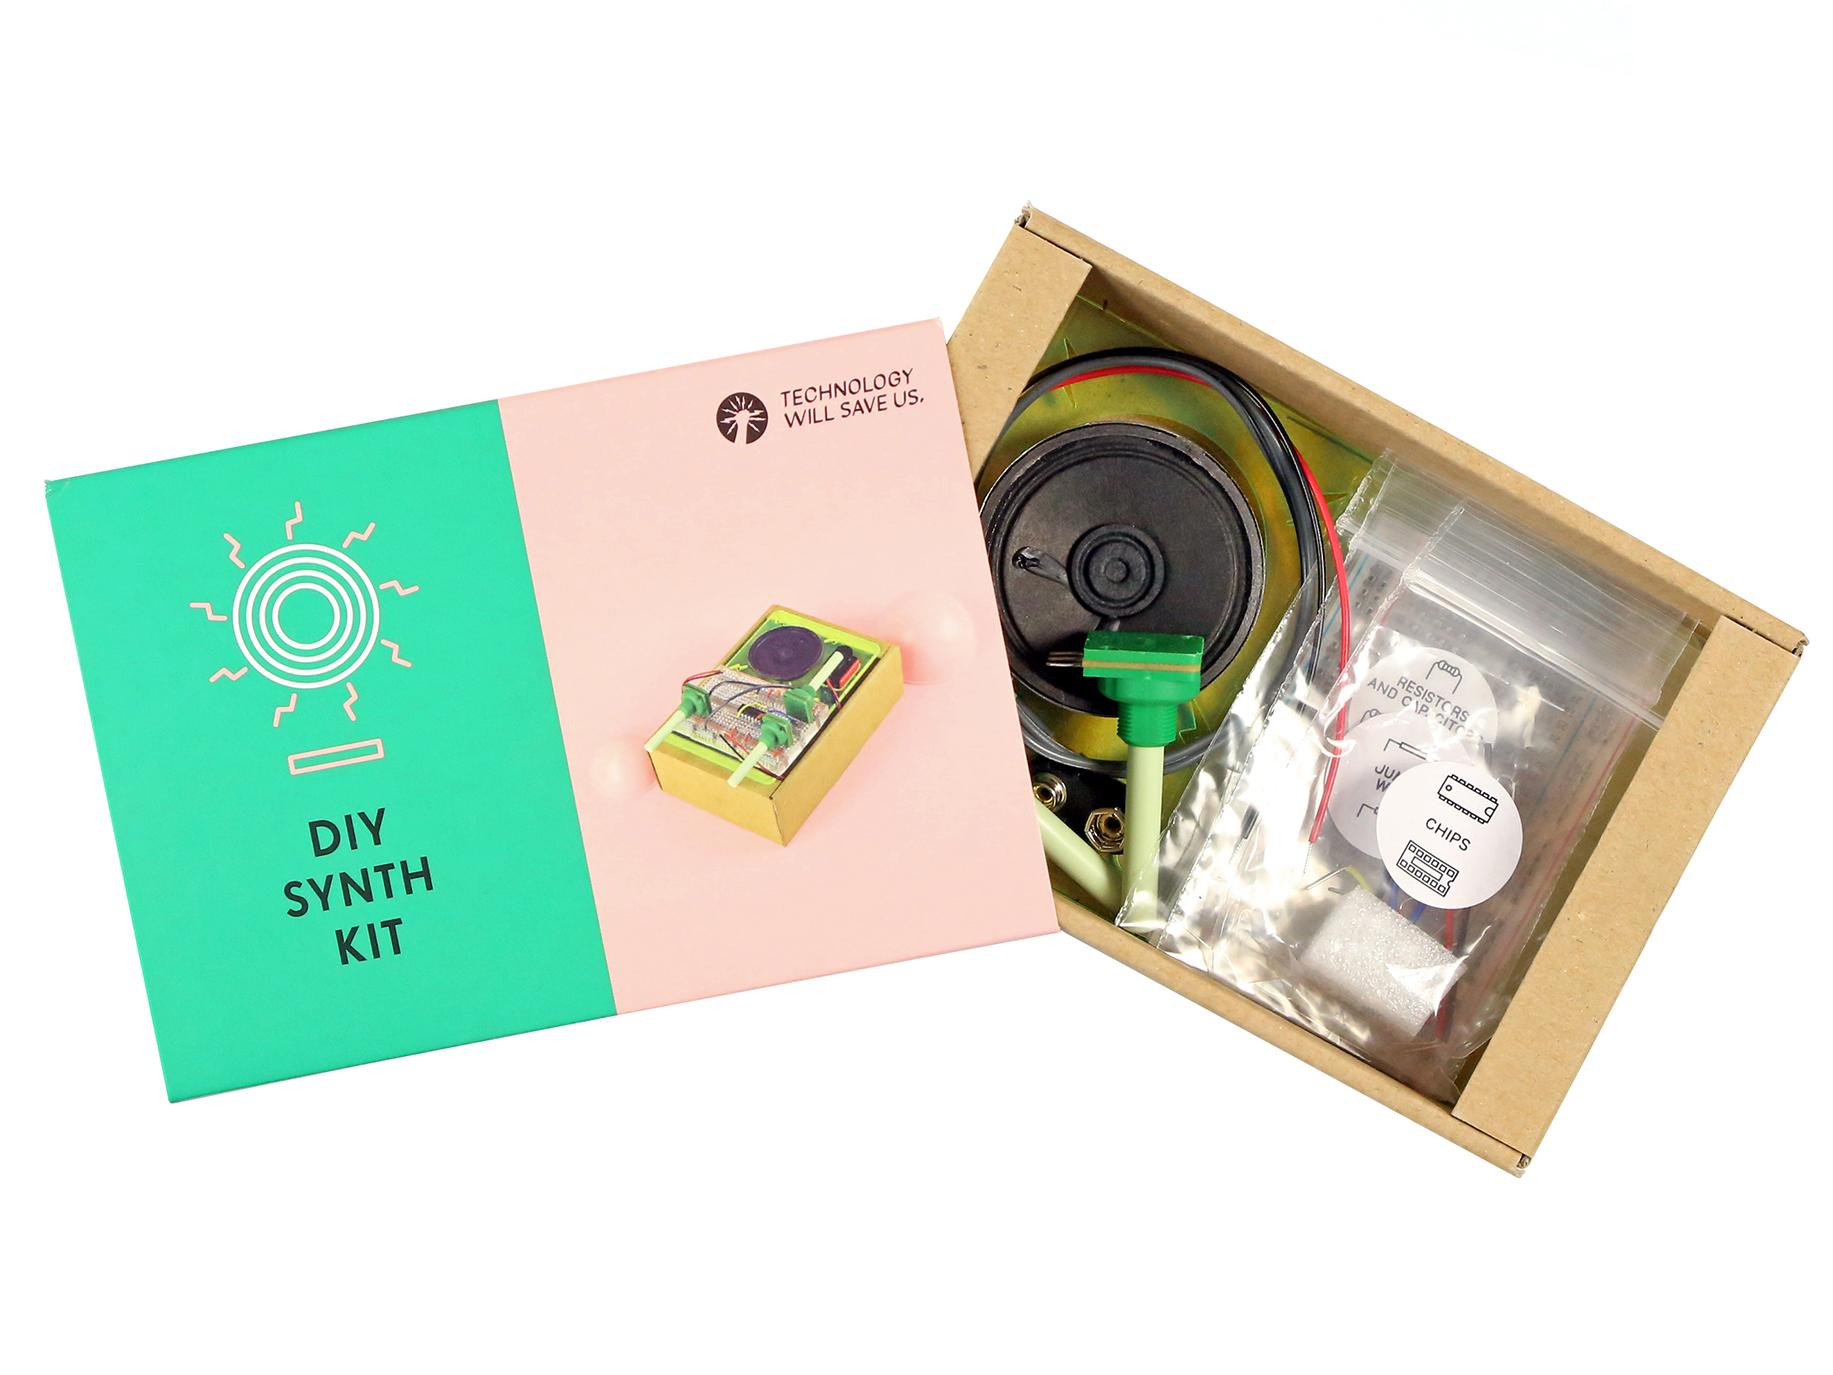 Best ideas about DIY Synth Kit . Save or Pin DIY Synth Kit Technology Will Save Us Now.